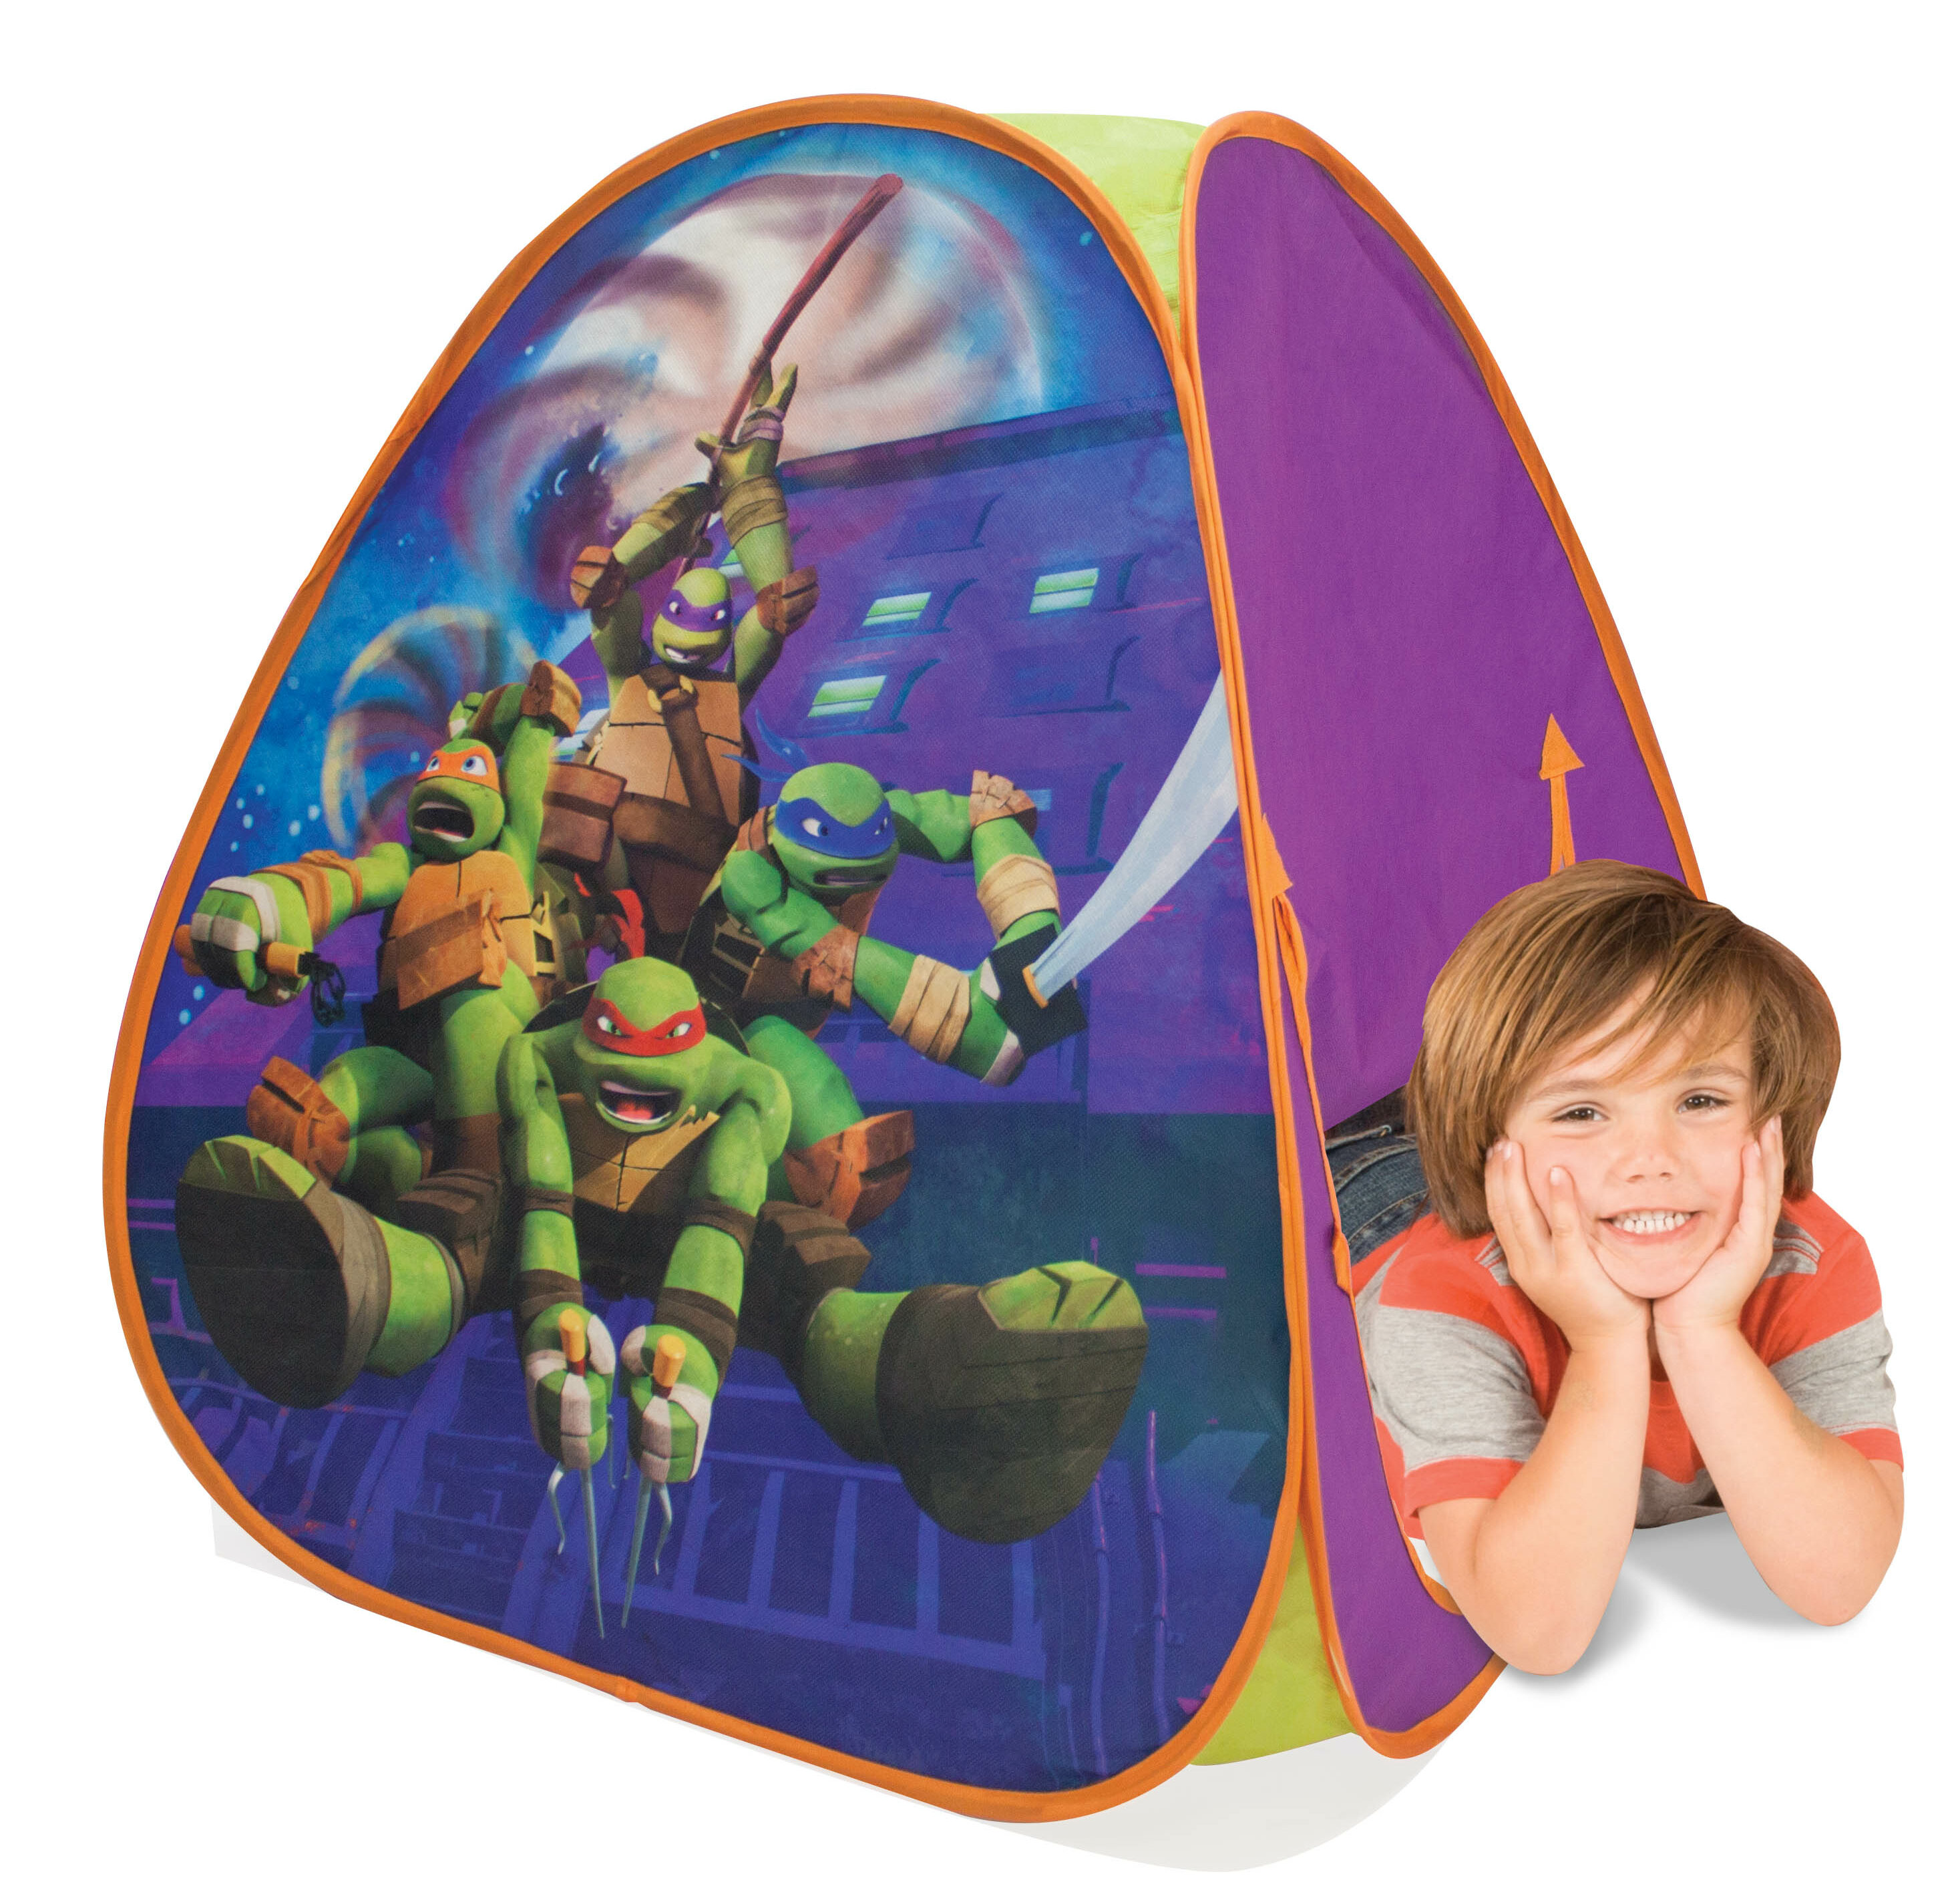 Playhut Teenage Mutant Ninja Turtles Classic Hideaway Play Tent u0026 Reviews | Wayfair  sc 1 st  Wayfair : hideaway tent - memphite.com